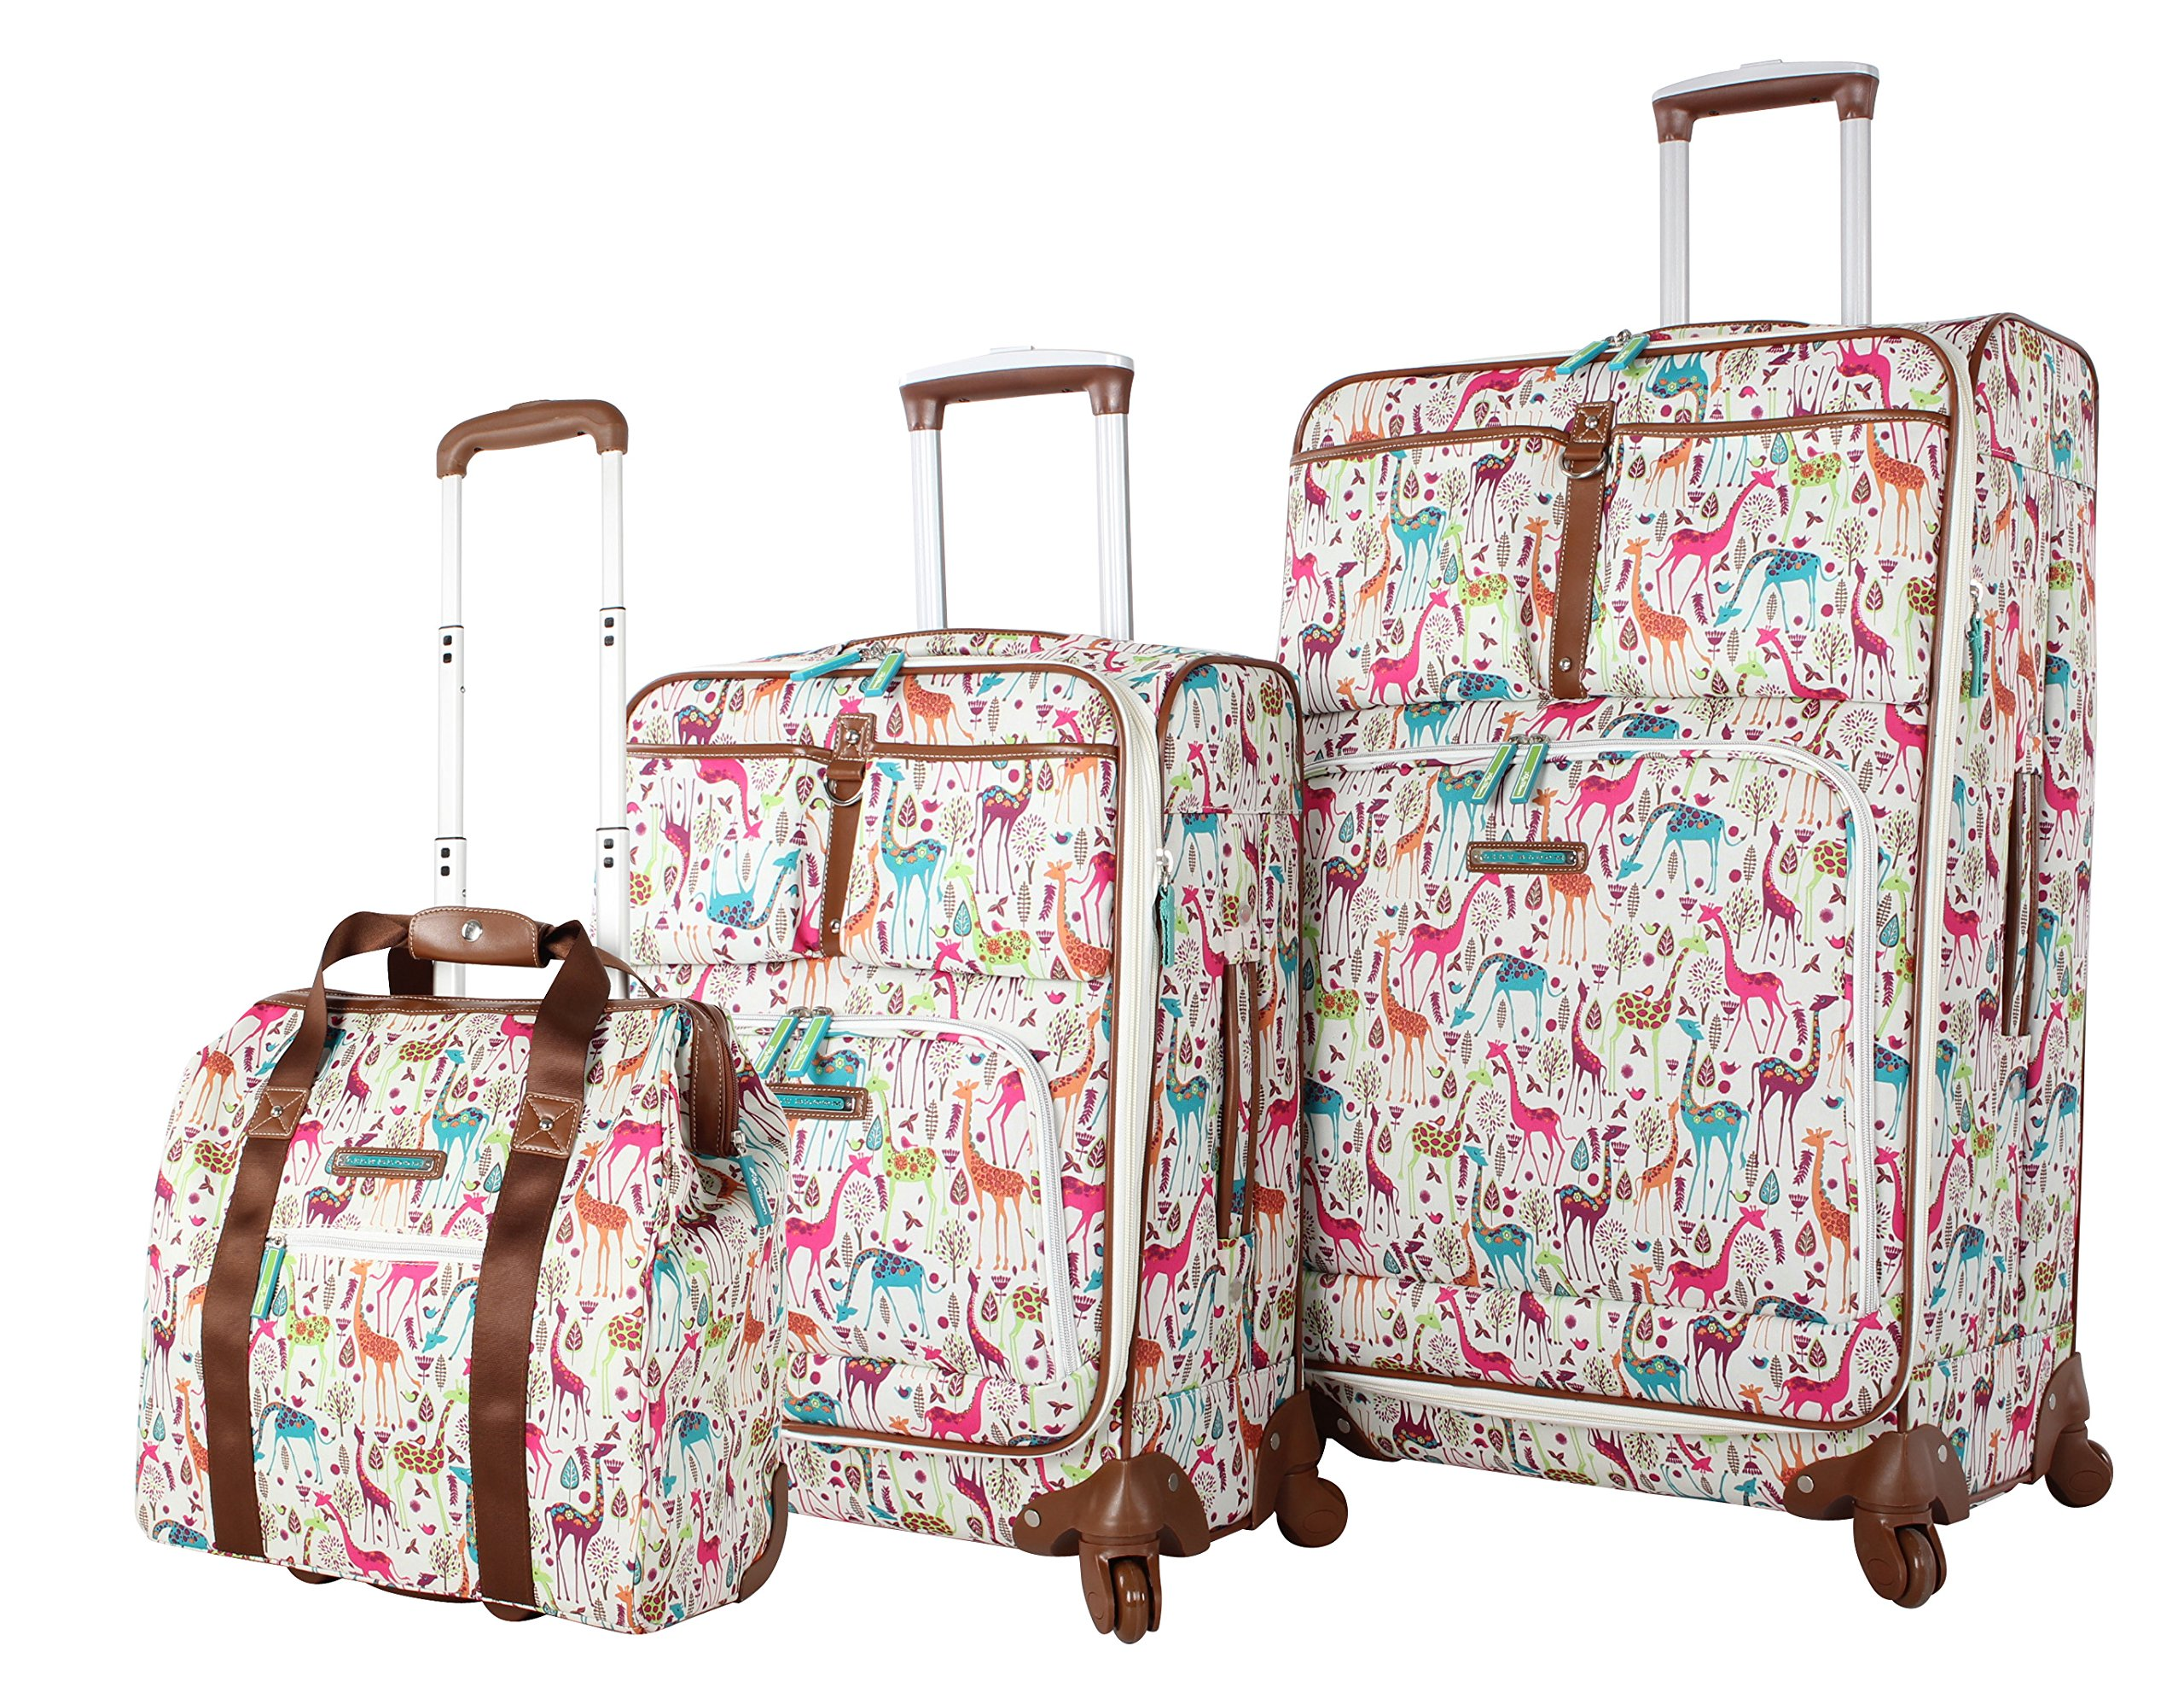 Lily Bloom Luggage 3 Piece Softside Spinner Suitcase Set Collection (Giraffe Park)